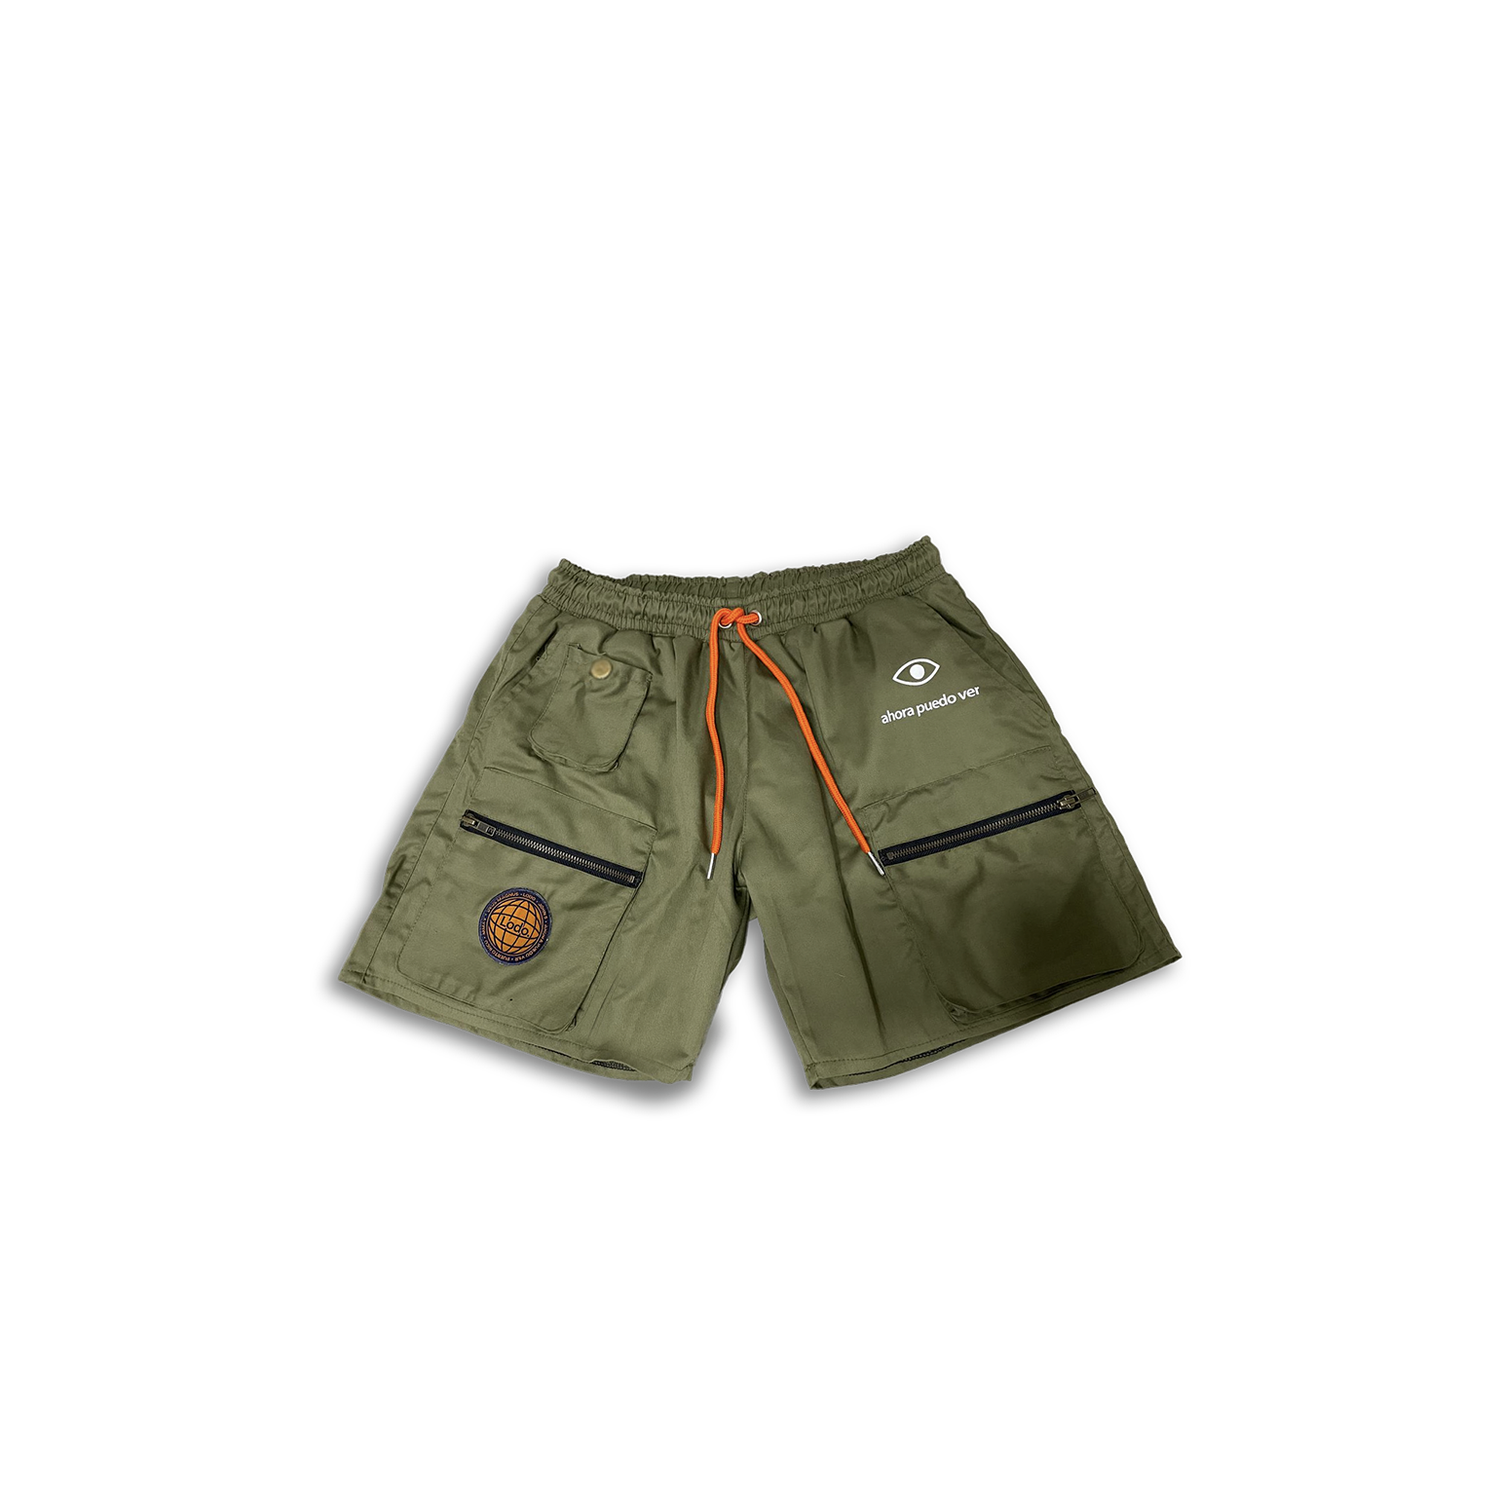 Image of Green Cargo Pants